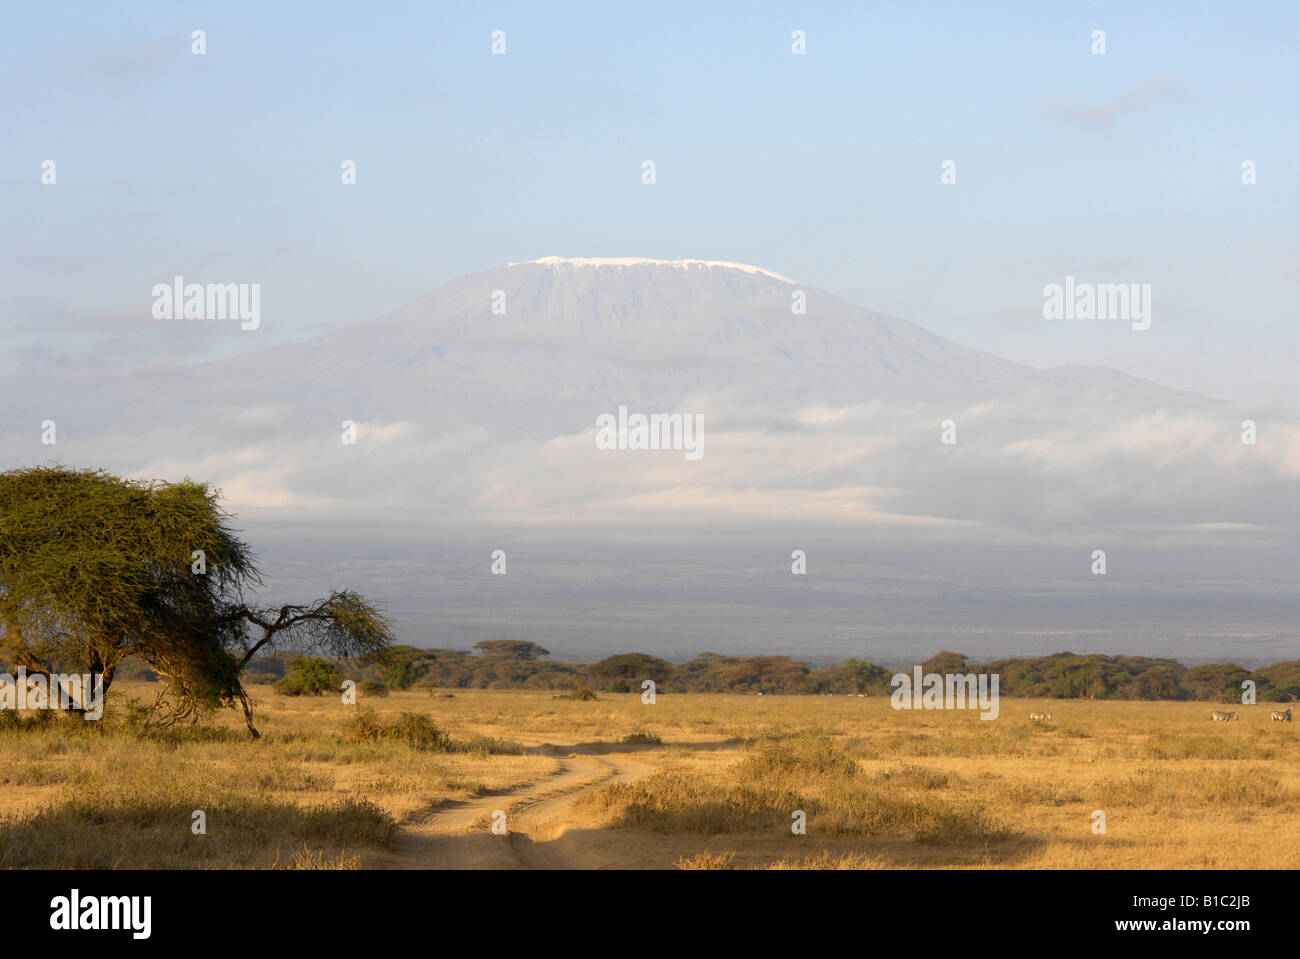 geography / travel, Kenya, Kimana Reservation, Mount Kilimanjaro, Additional-Rights-Clearance-Info-Not-Available - Stock Image